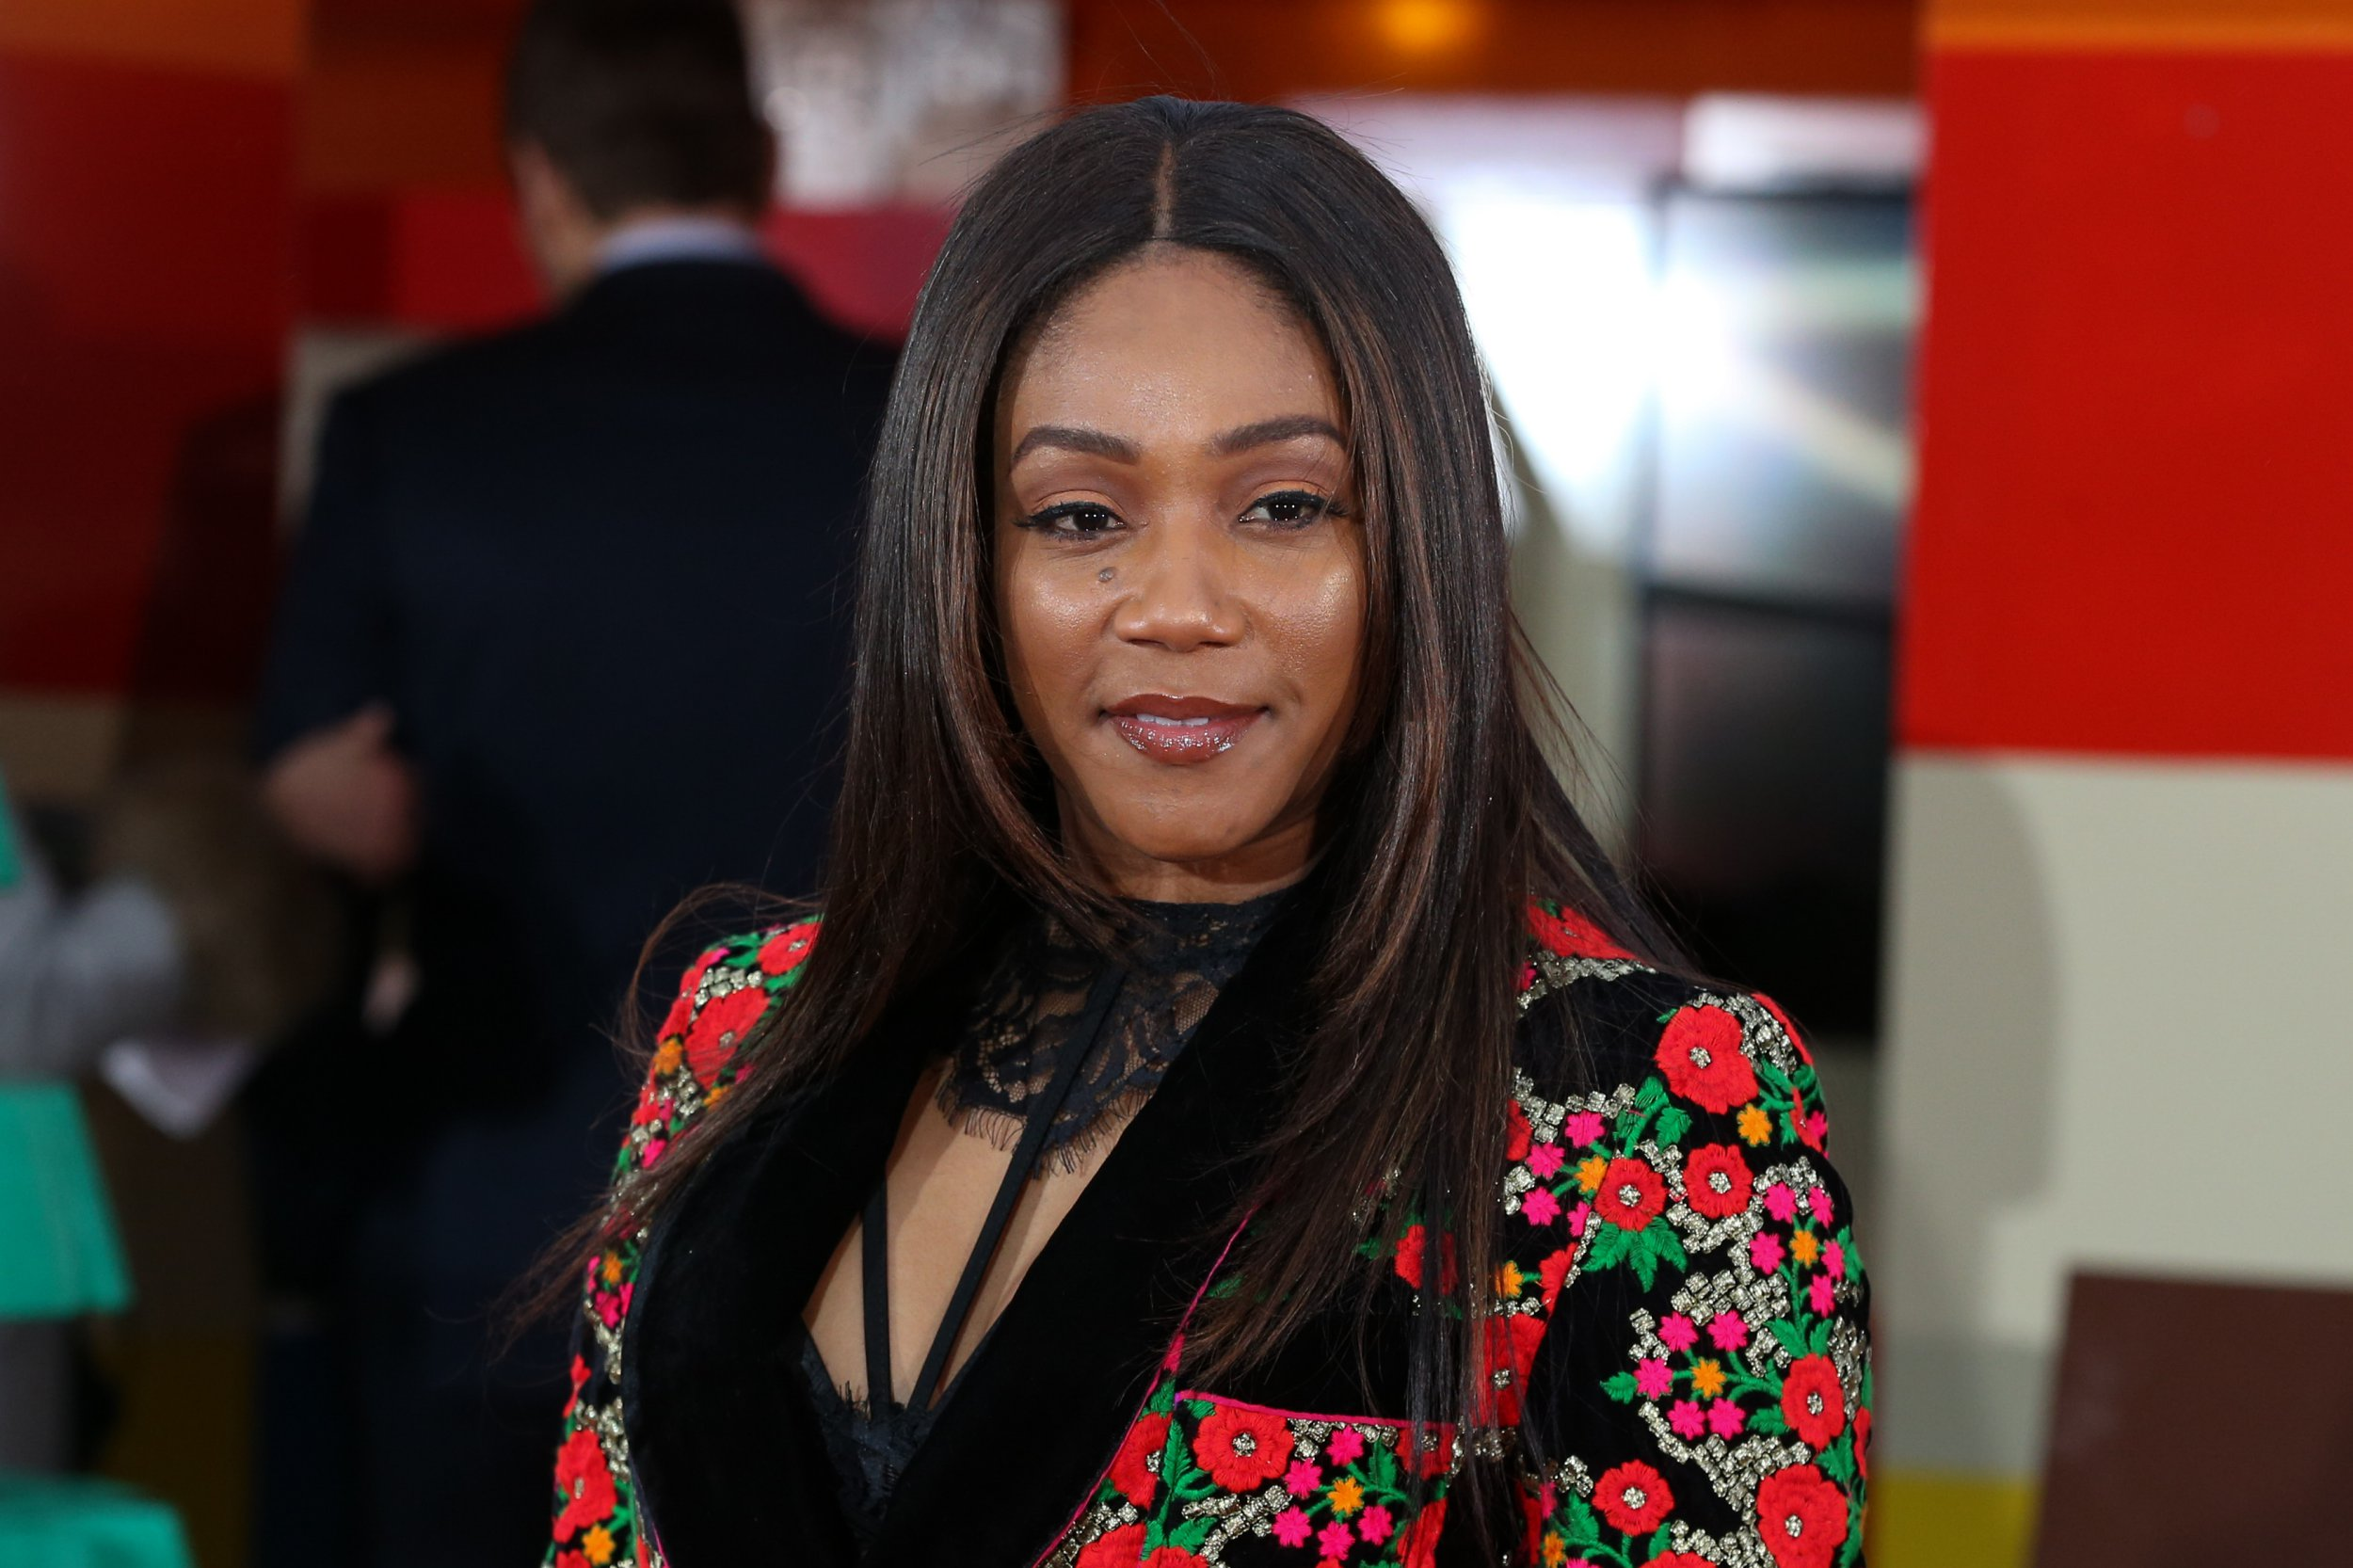 Tiffany Haddish vows to move on from disastrous New Year stand-up show